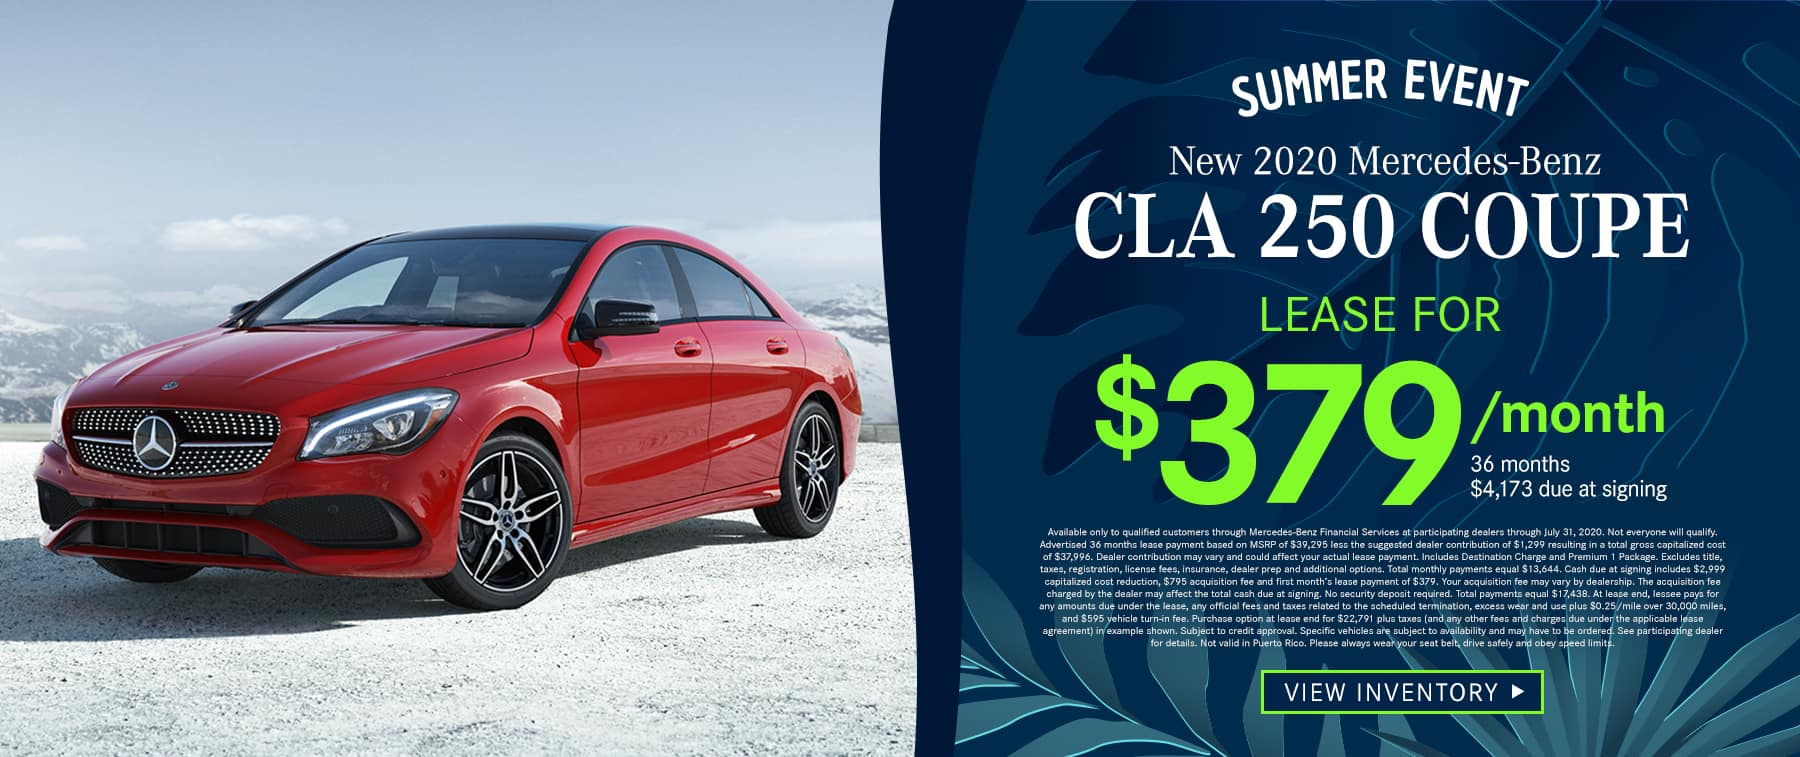 2020 CLA 250 Coupe Lease as low as $379 Per Month 36 Months/10k Miles $4,173 Due at signing